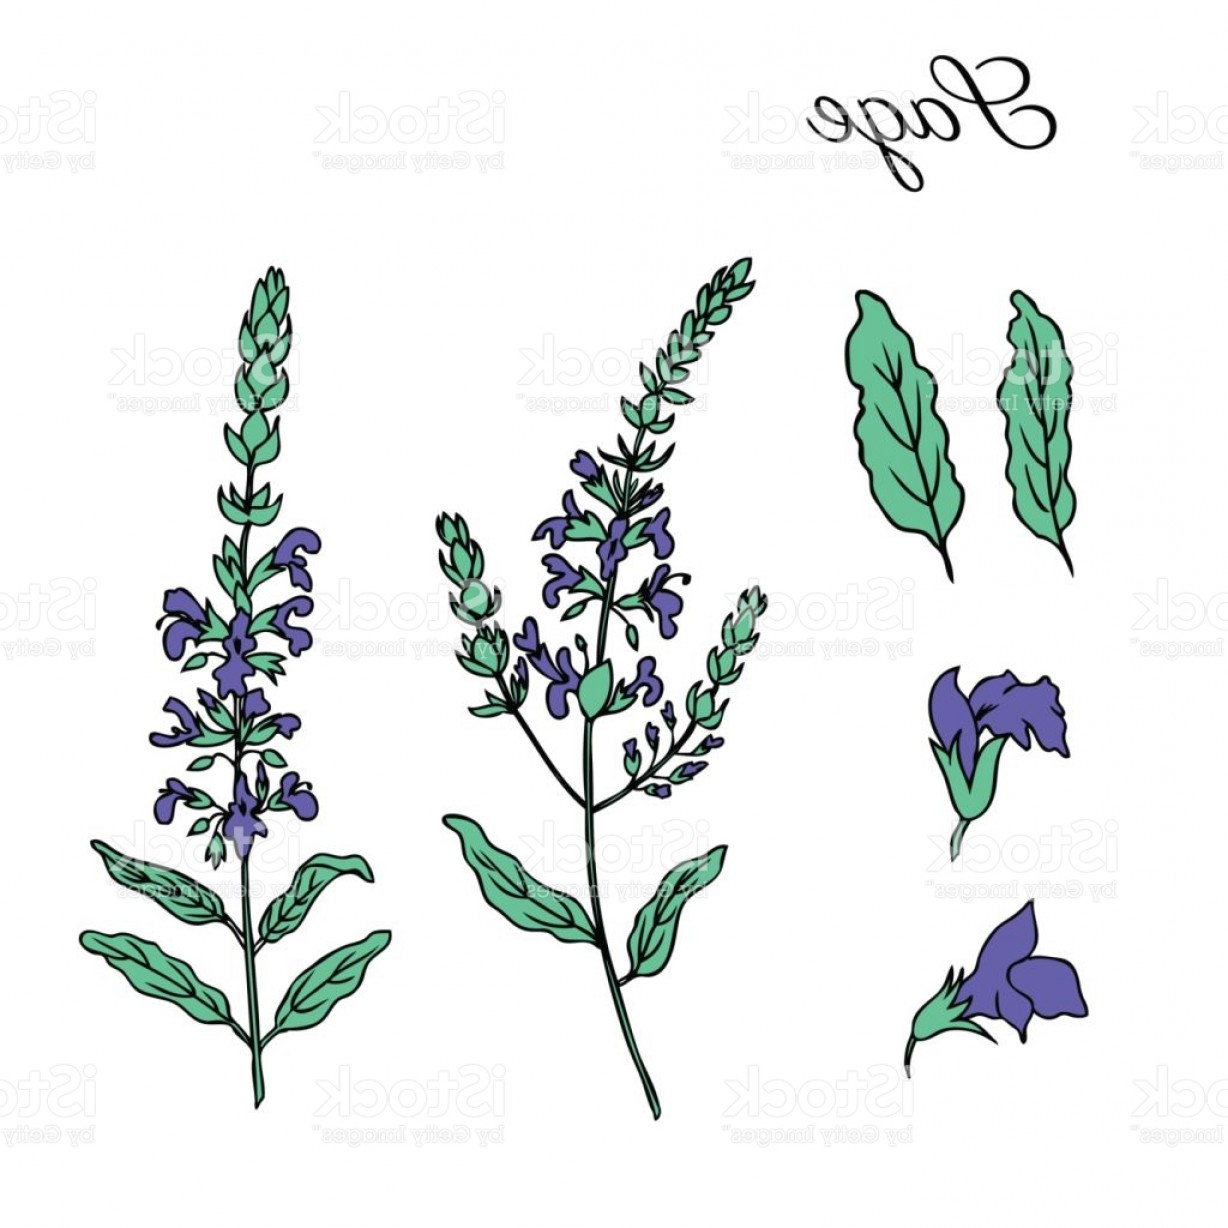 Sage Plant Vector: Sage Flower Vector Isolated On White Background Hand Drawn Ink Doodle Sketch Sage Gm